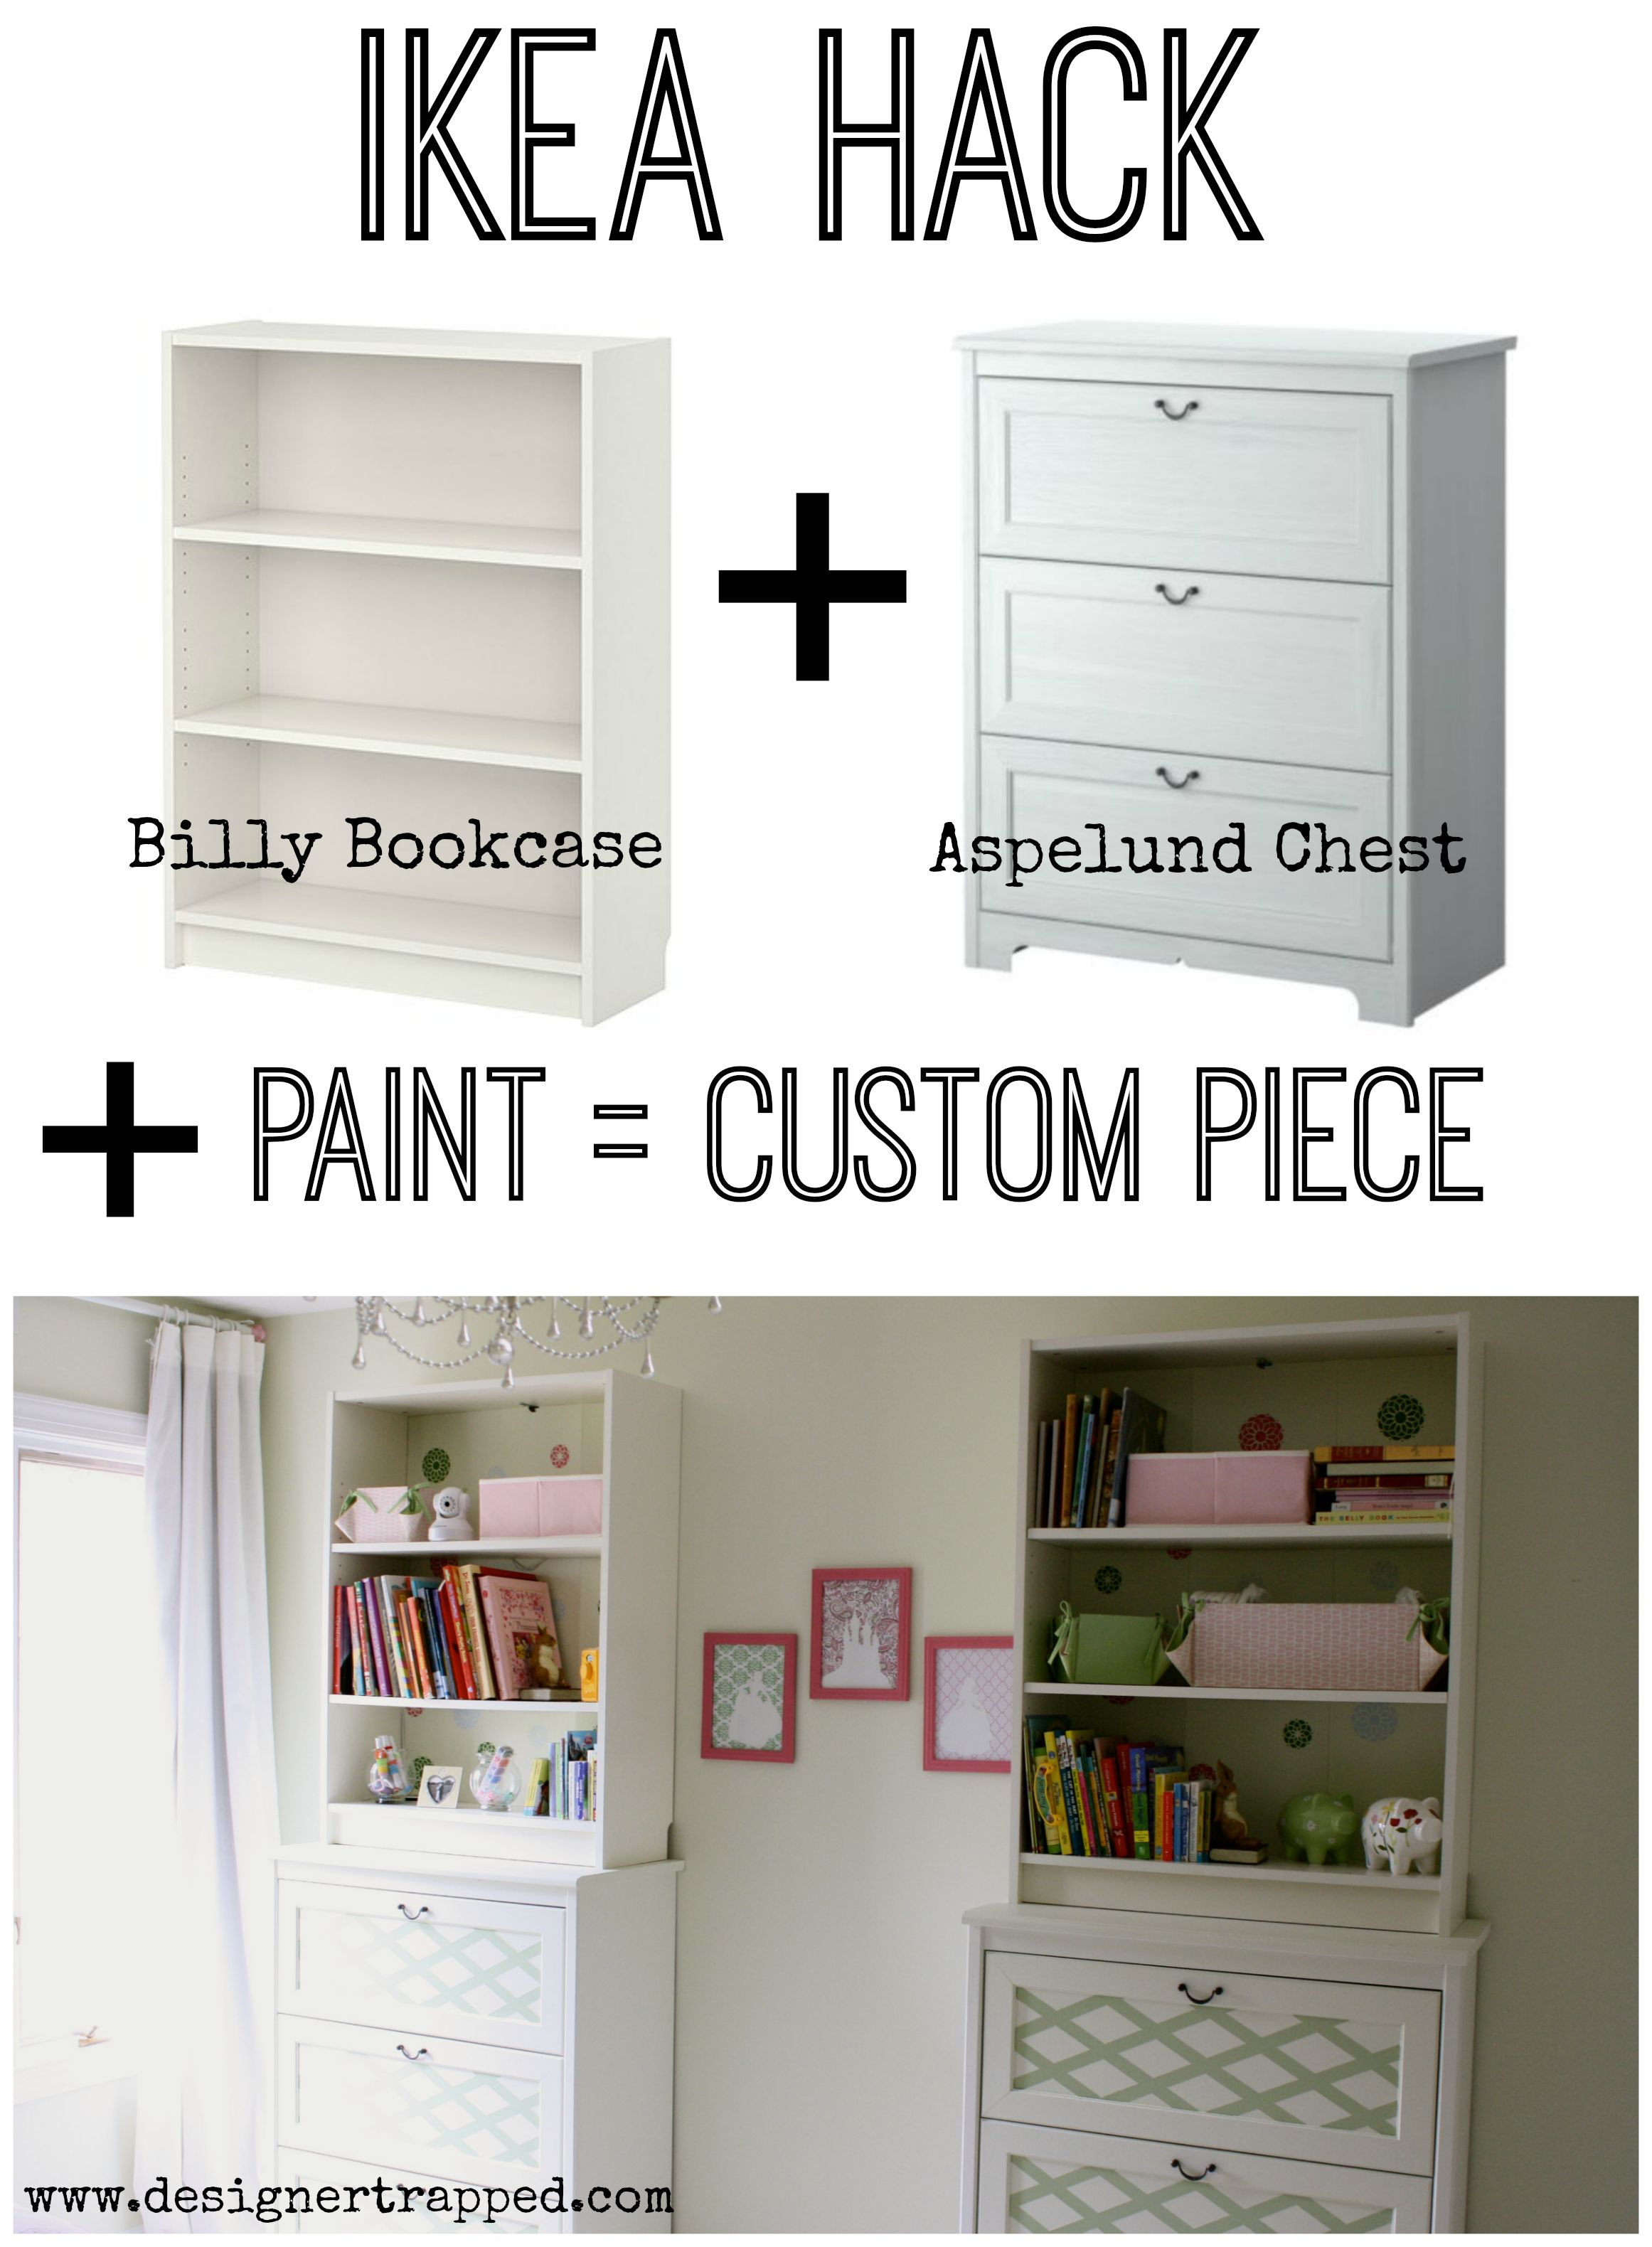 transforming ikea furniture. Customize Ikea Furniture - Paint Transformation! Transforming